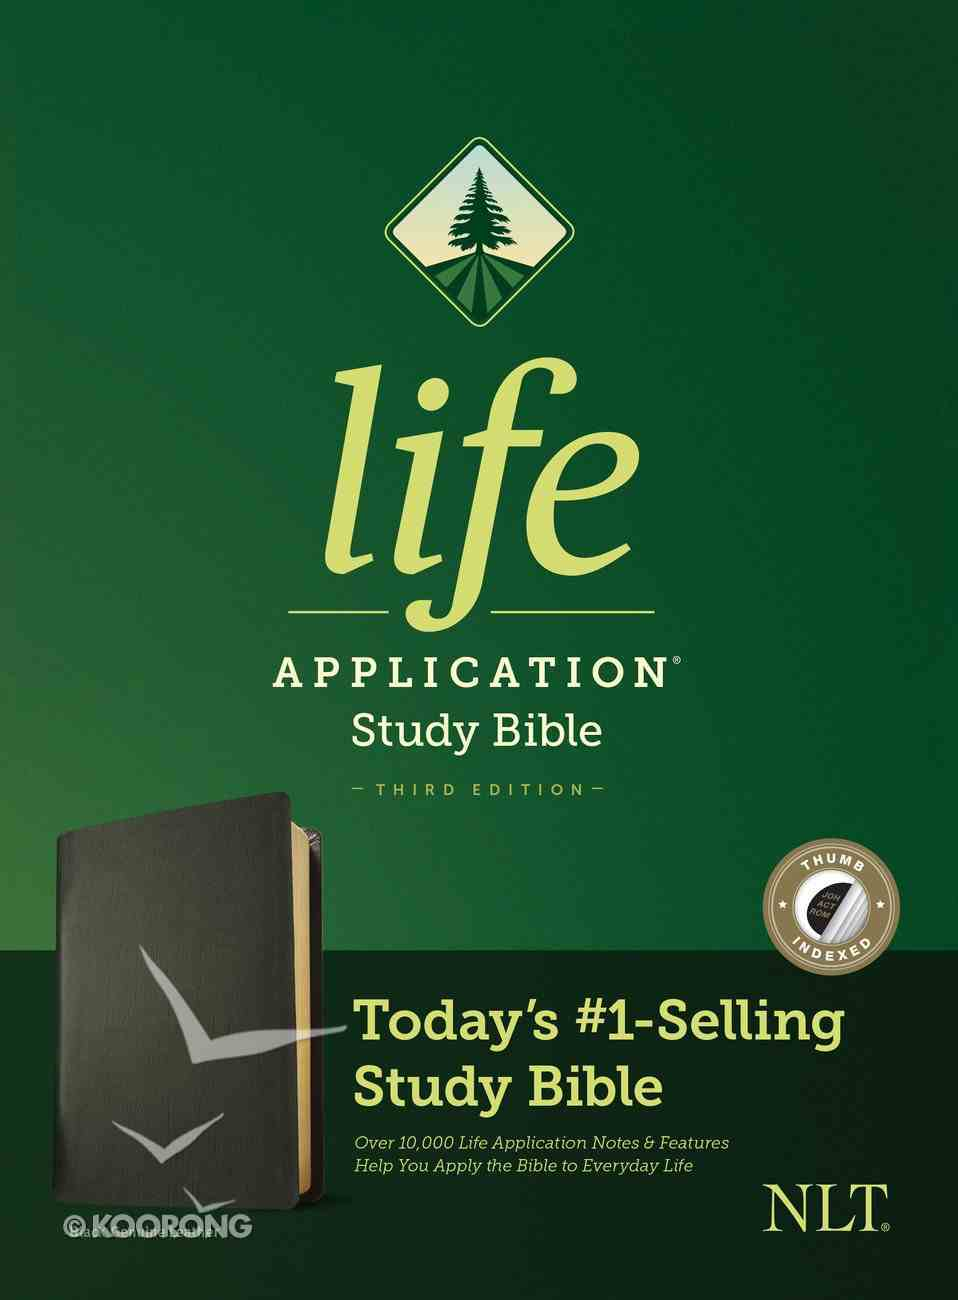 NLT Life Application Study Bible 3rd Edition Black Indexed (Black Letter Edition) Genuine Leather